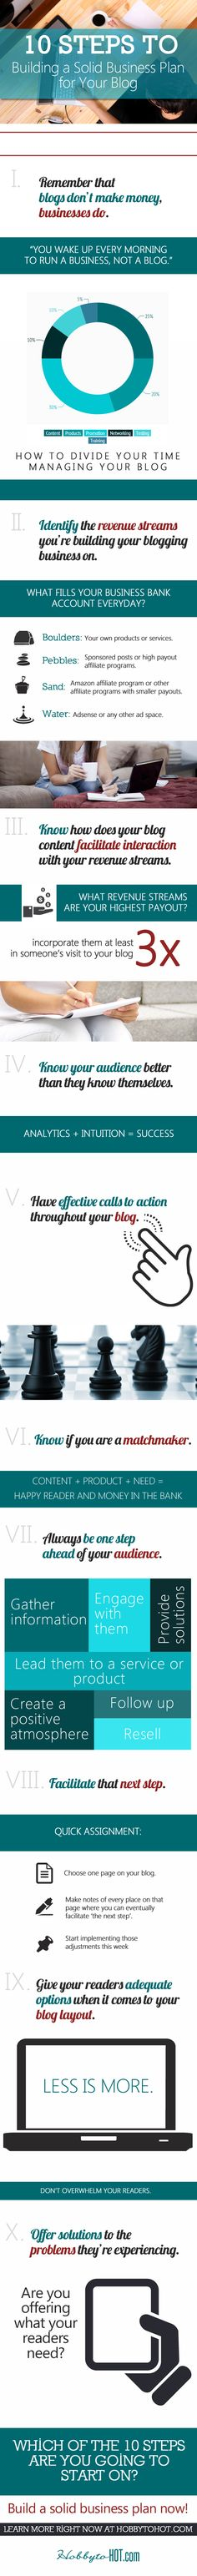 An easy to follow guide on building a plan for making your business blog successful.